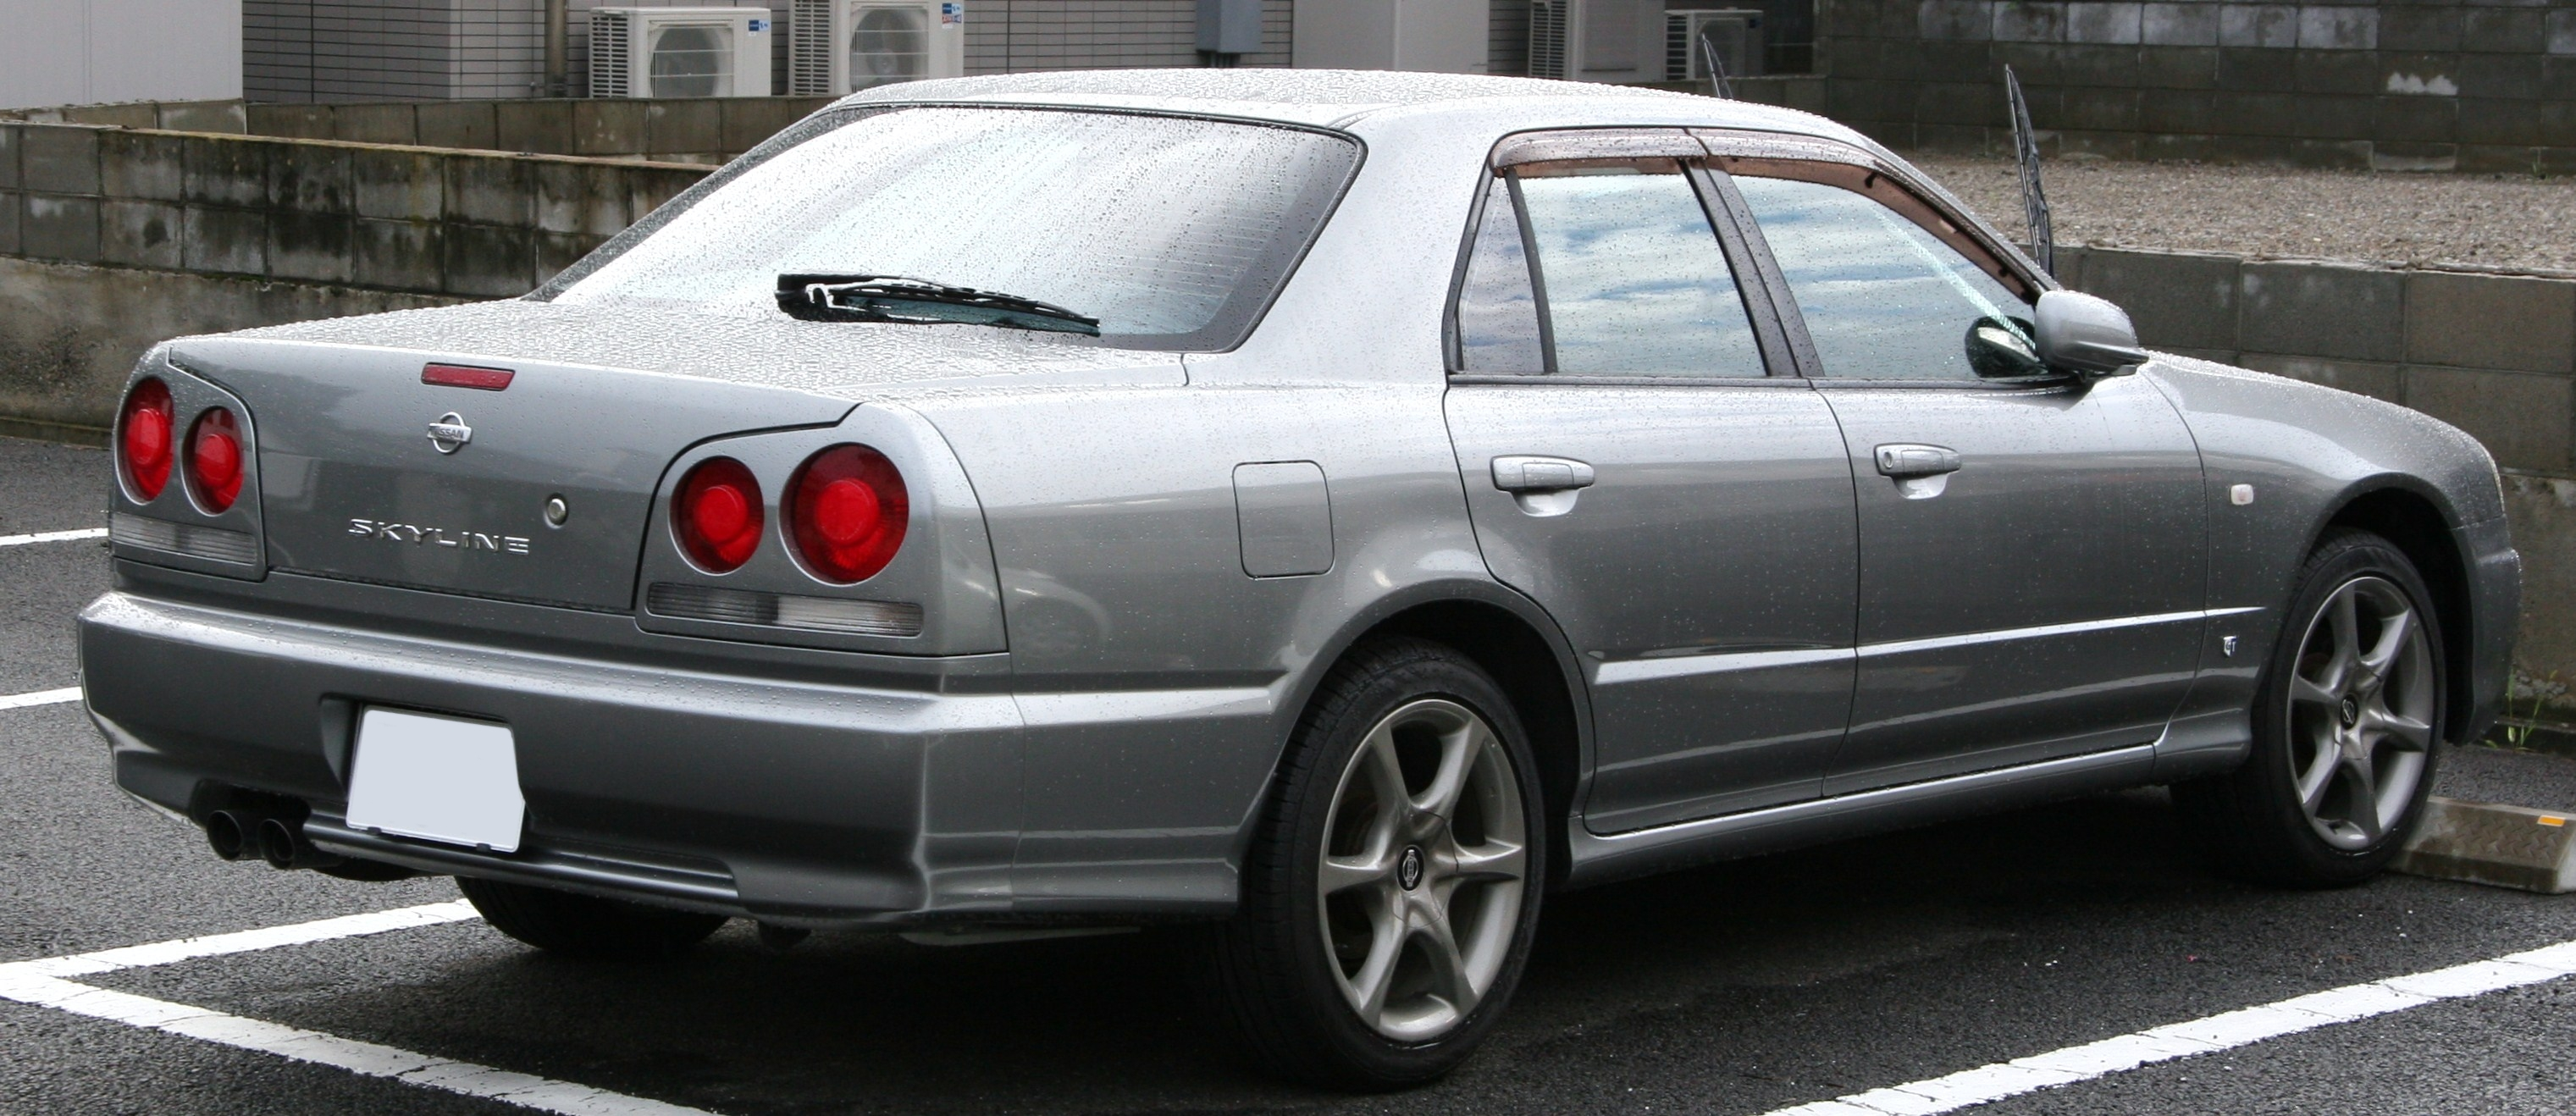 File Nissan Skyline Sports Sedan Rear Jpg Wikipedia